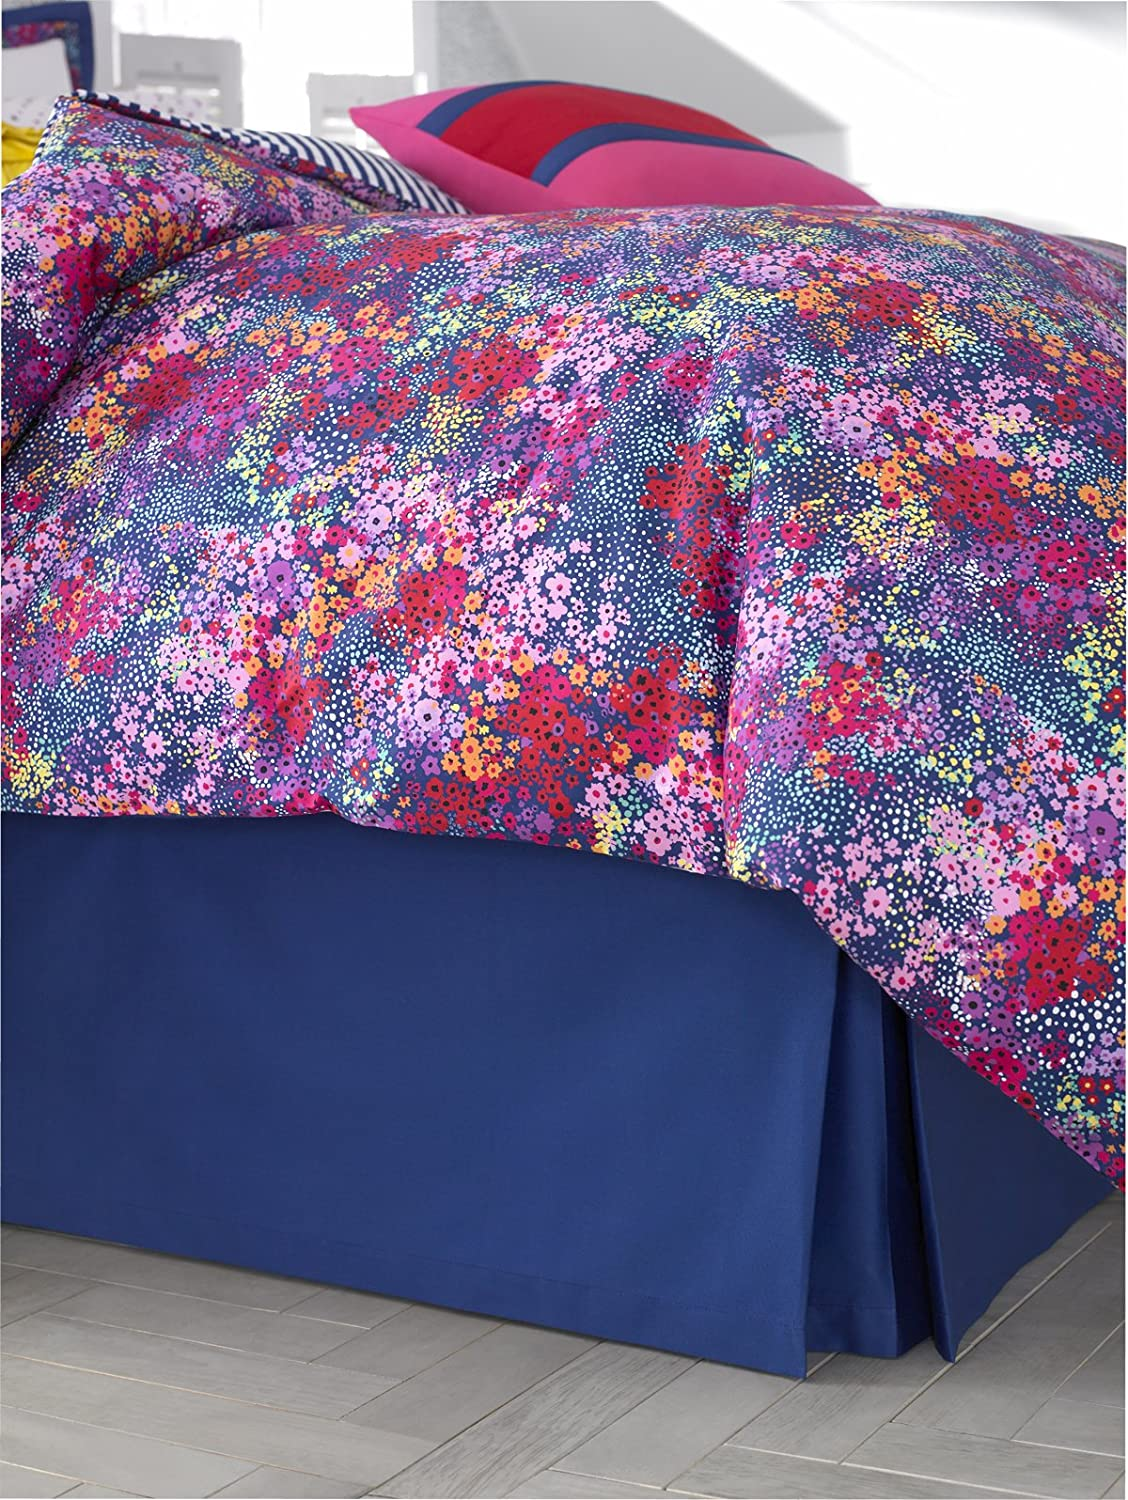 Teen Vogue Sweet Floral Full Bedskirt Idea Nuova Inc. JP649055